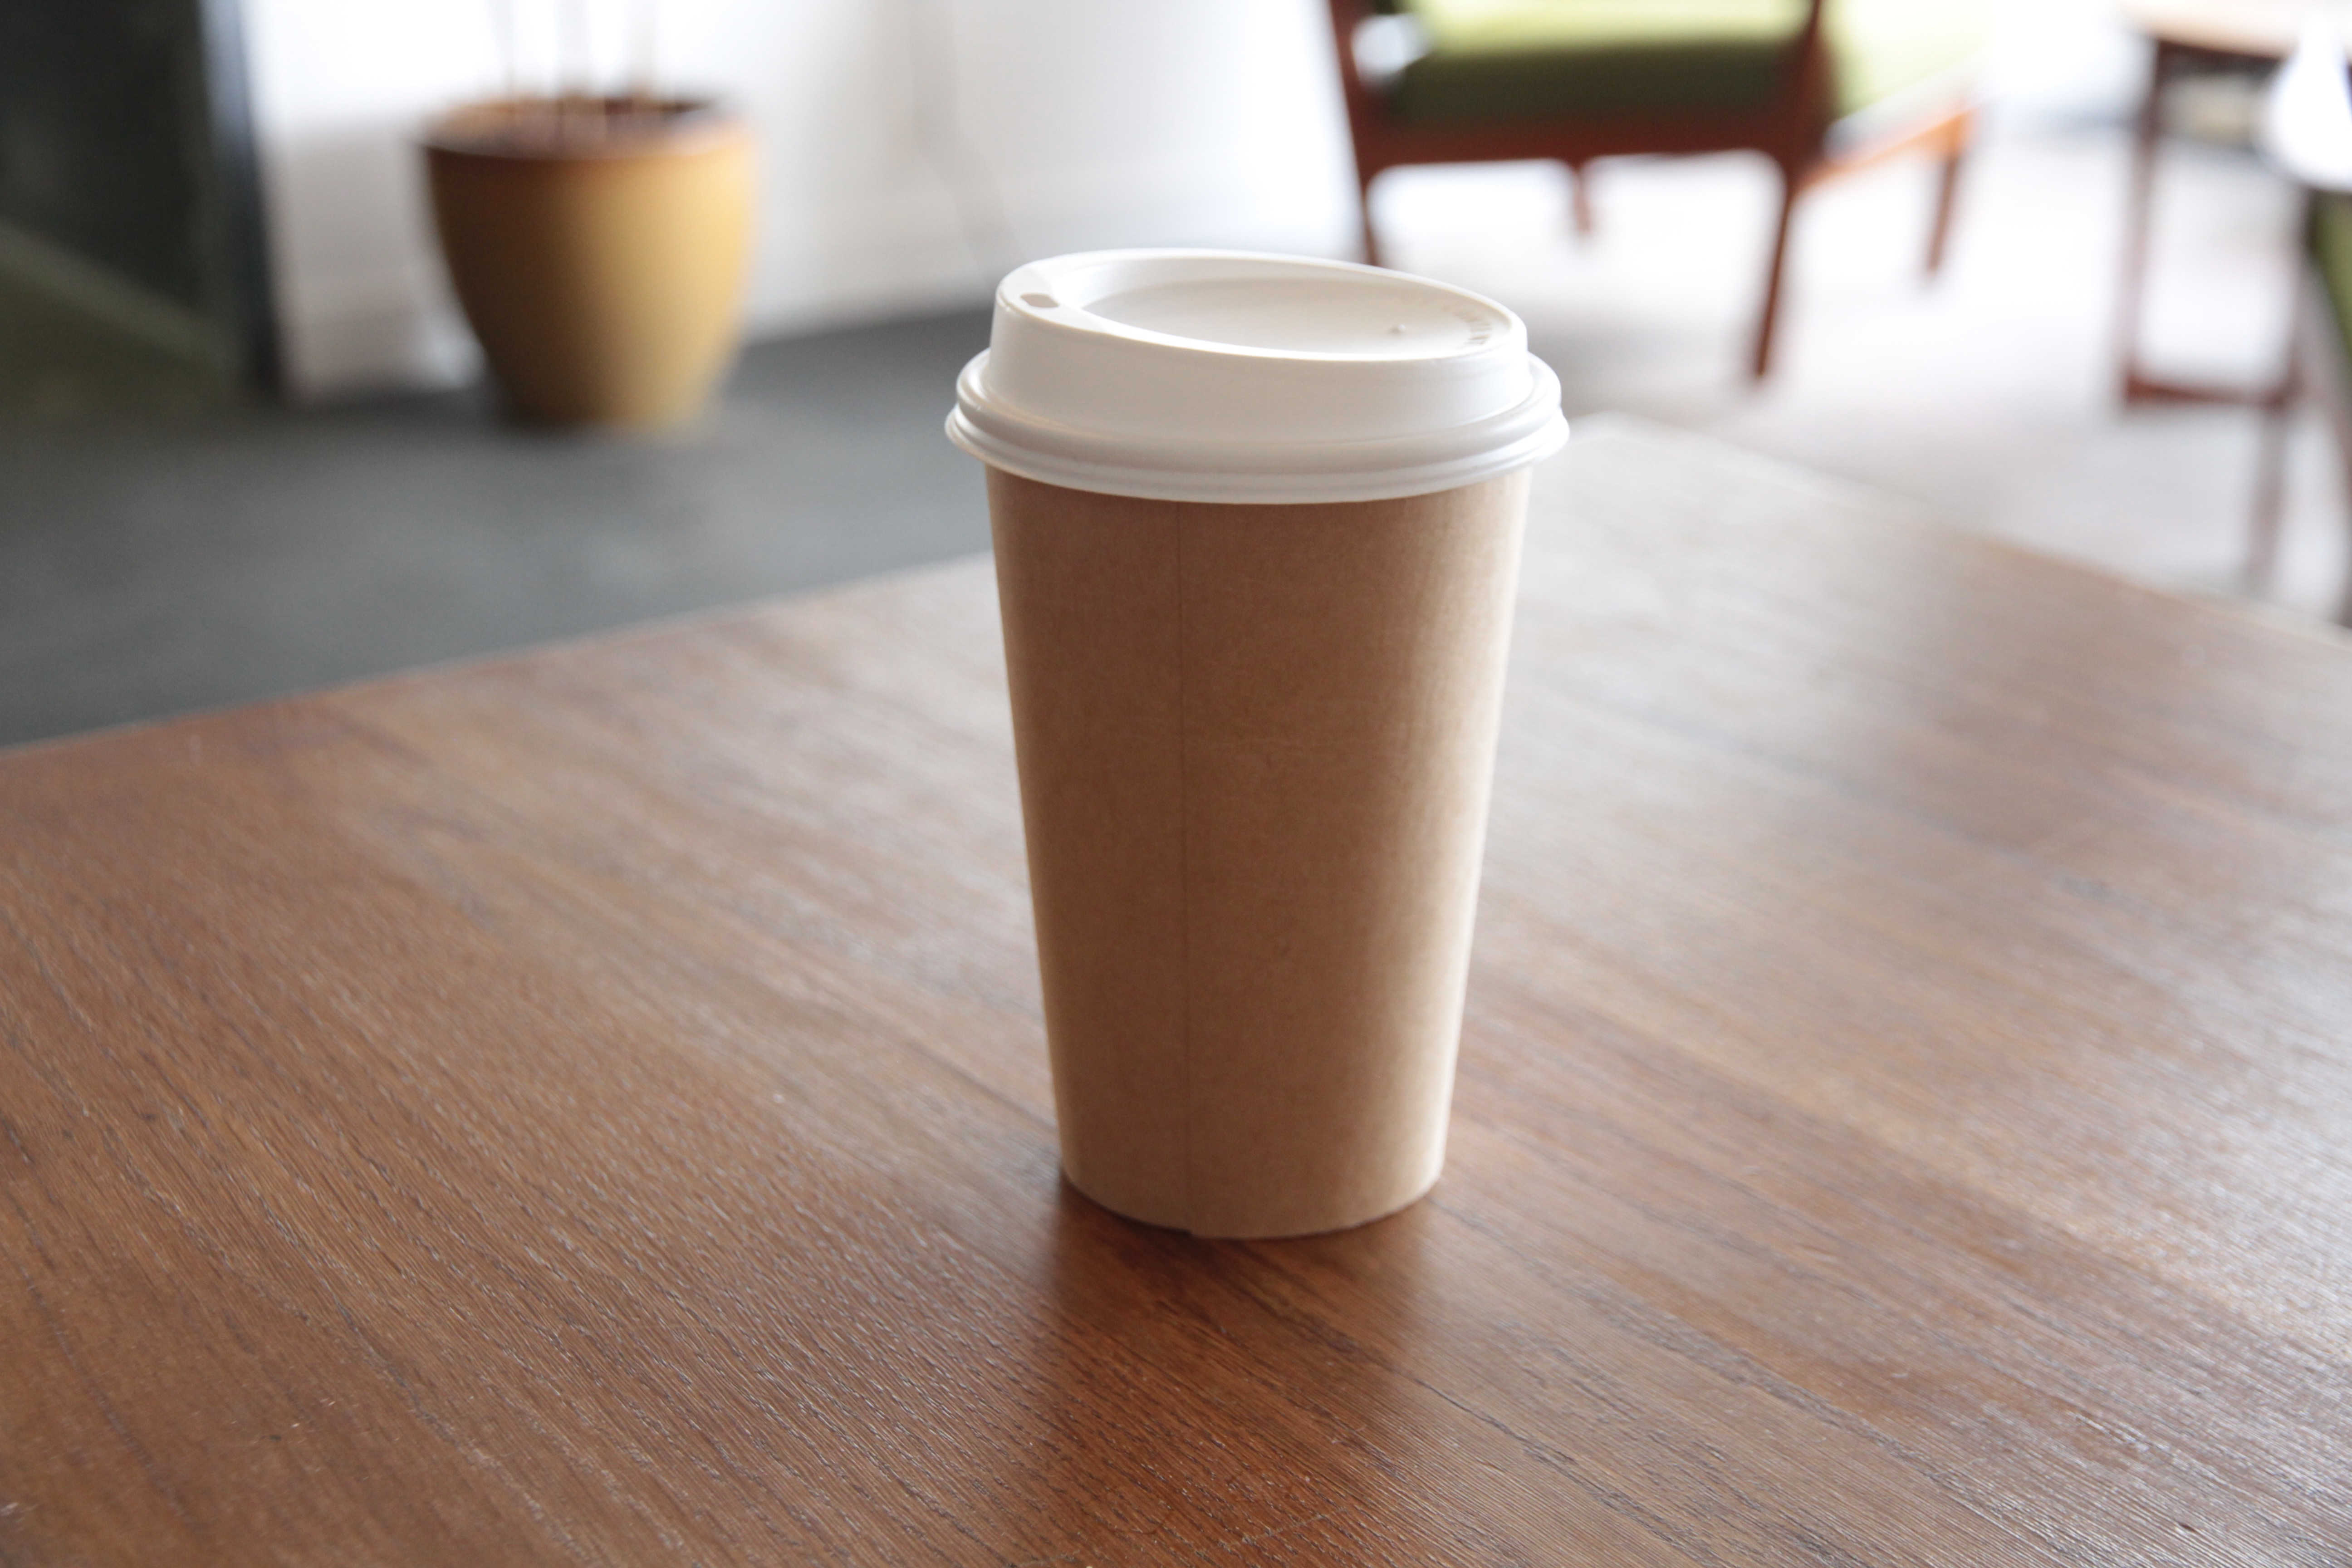 World First Bioplastic Solution To Growing Coffee Cup